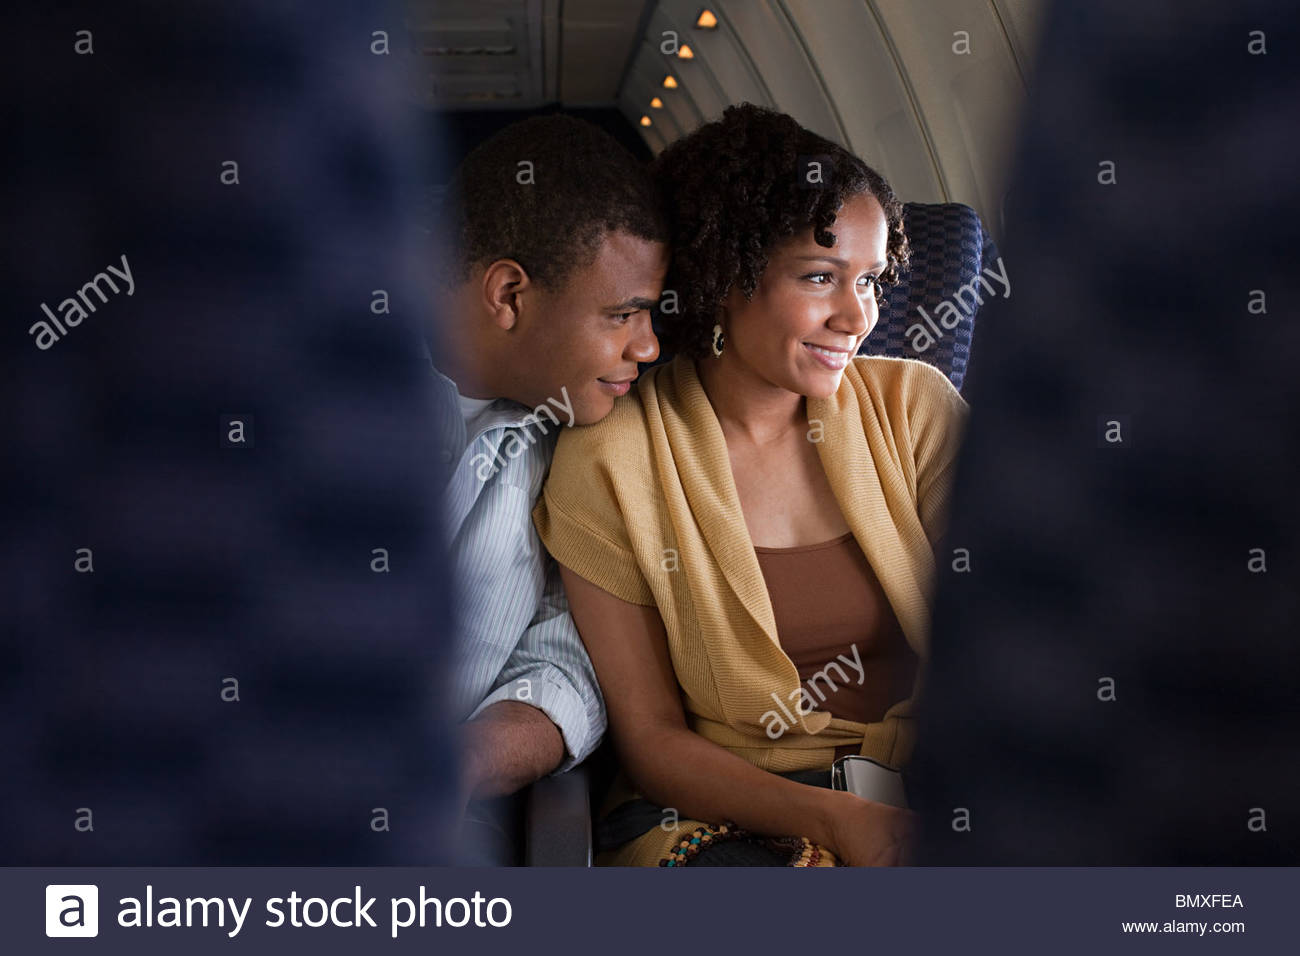 Couple on an airplane - Stock Image